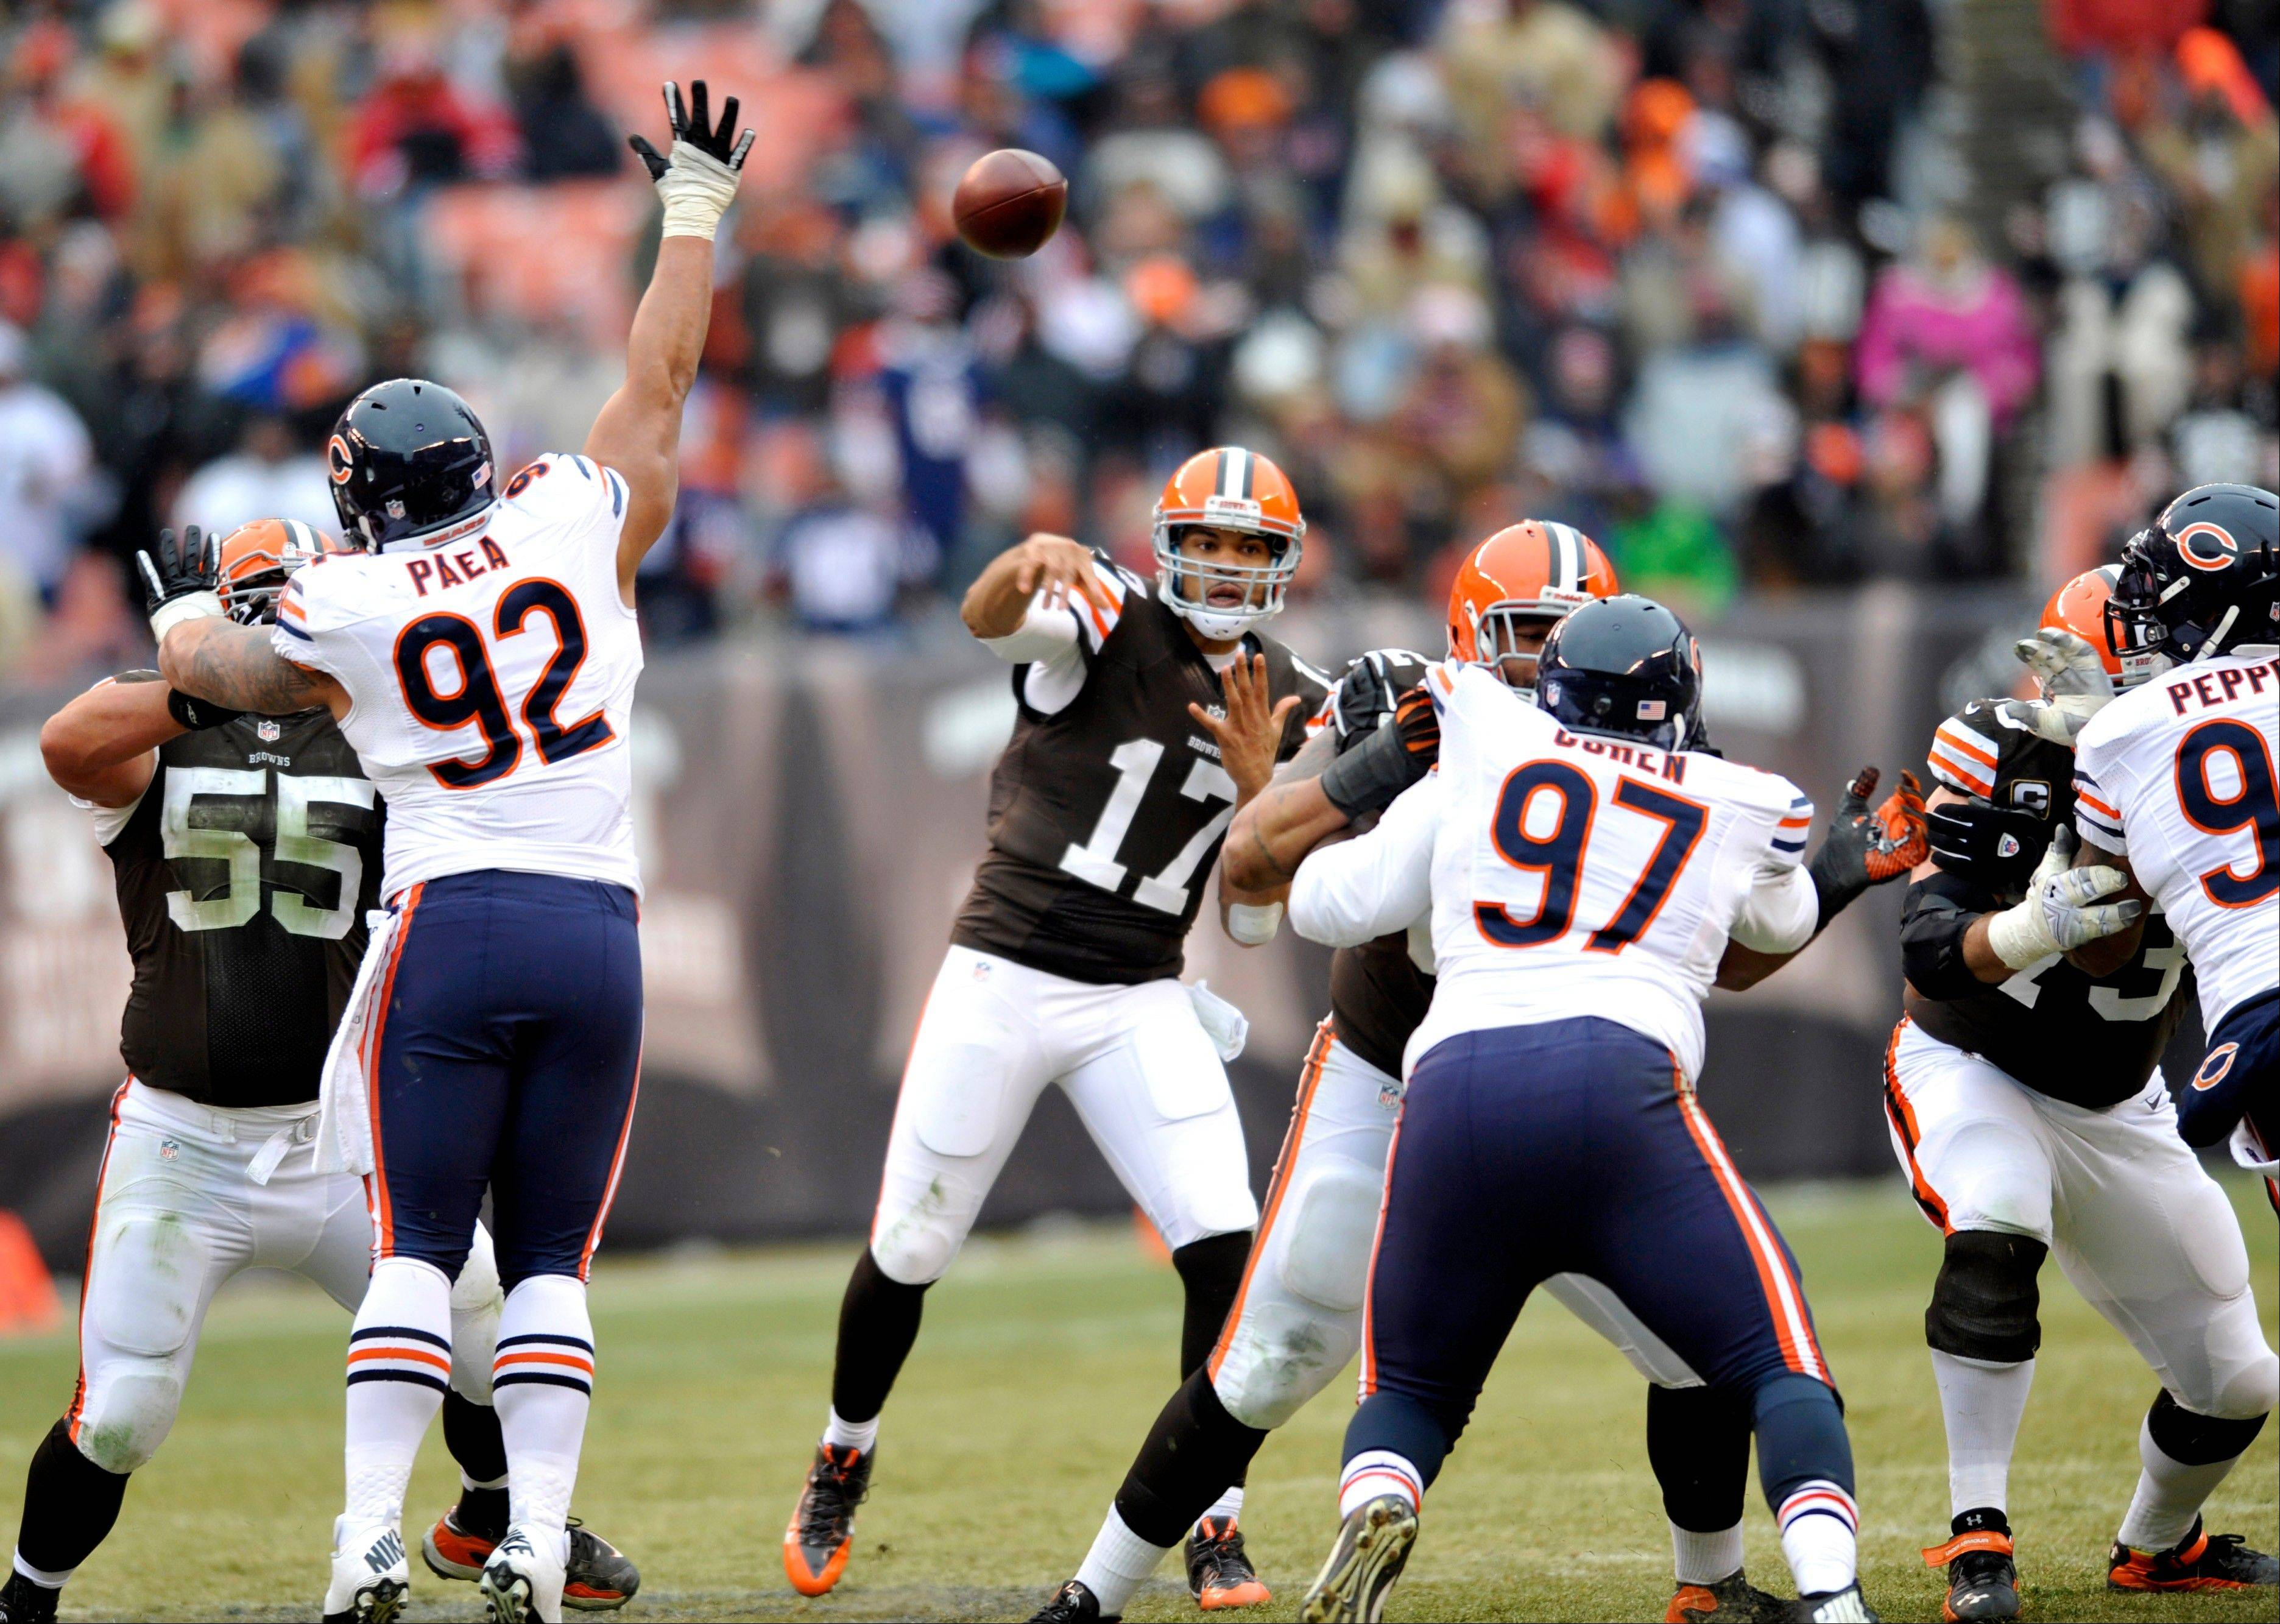 The Bears' defense held quarterback Jason Campbell and the Browns' offense to 10 points until a late TD pass Sunday in Cleveland.